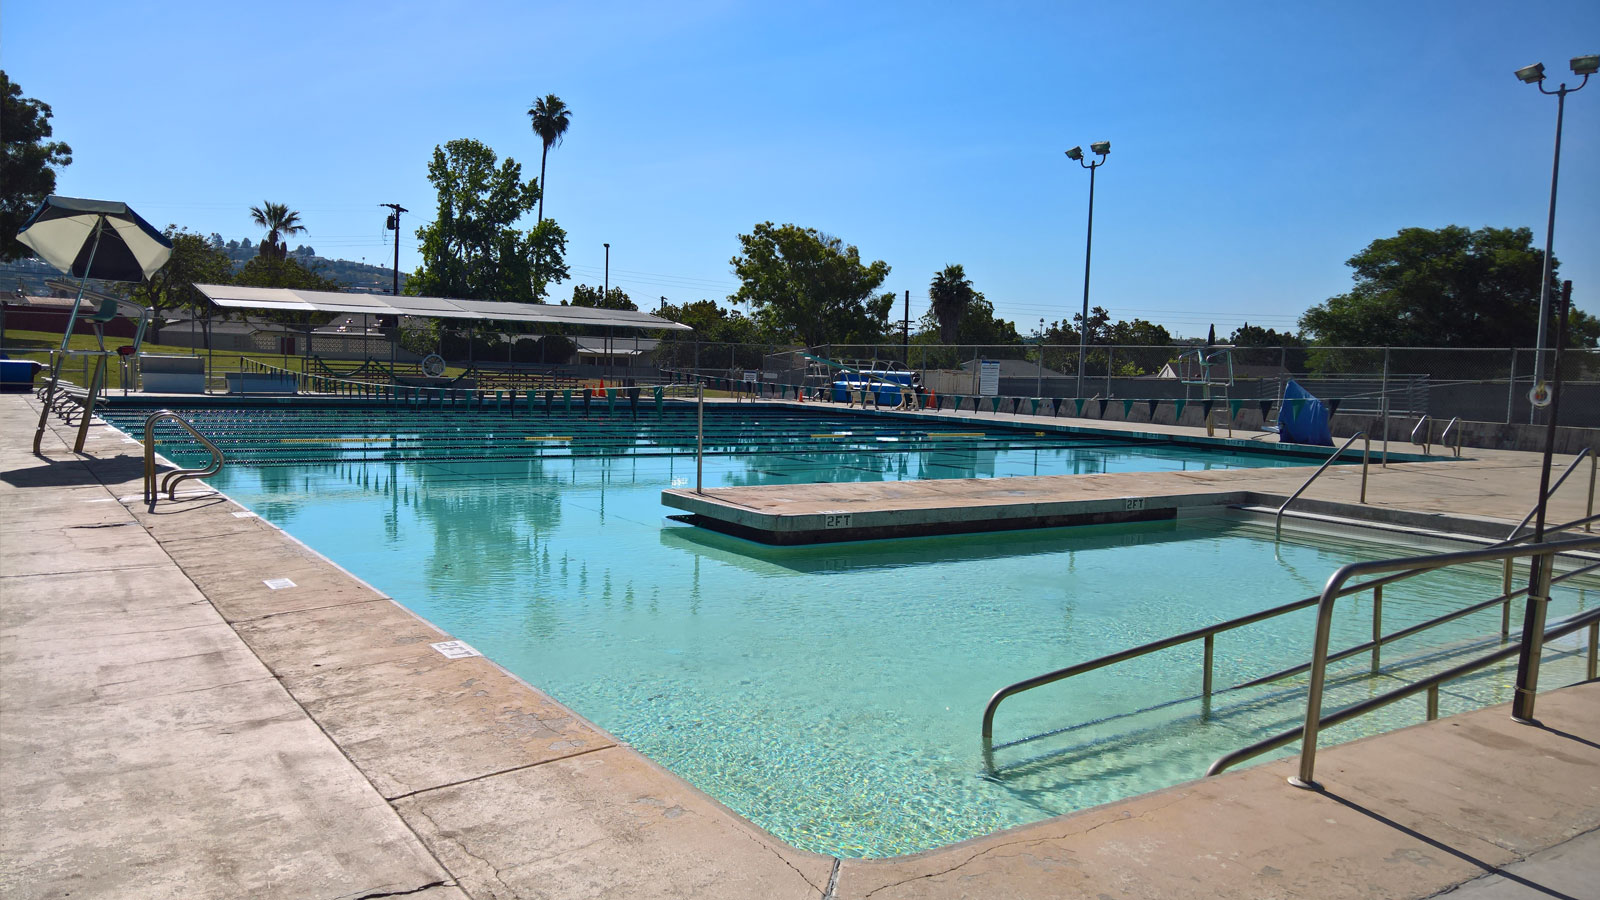 Allied gardens pool city of san diego official website for Garden town pool